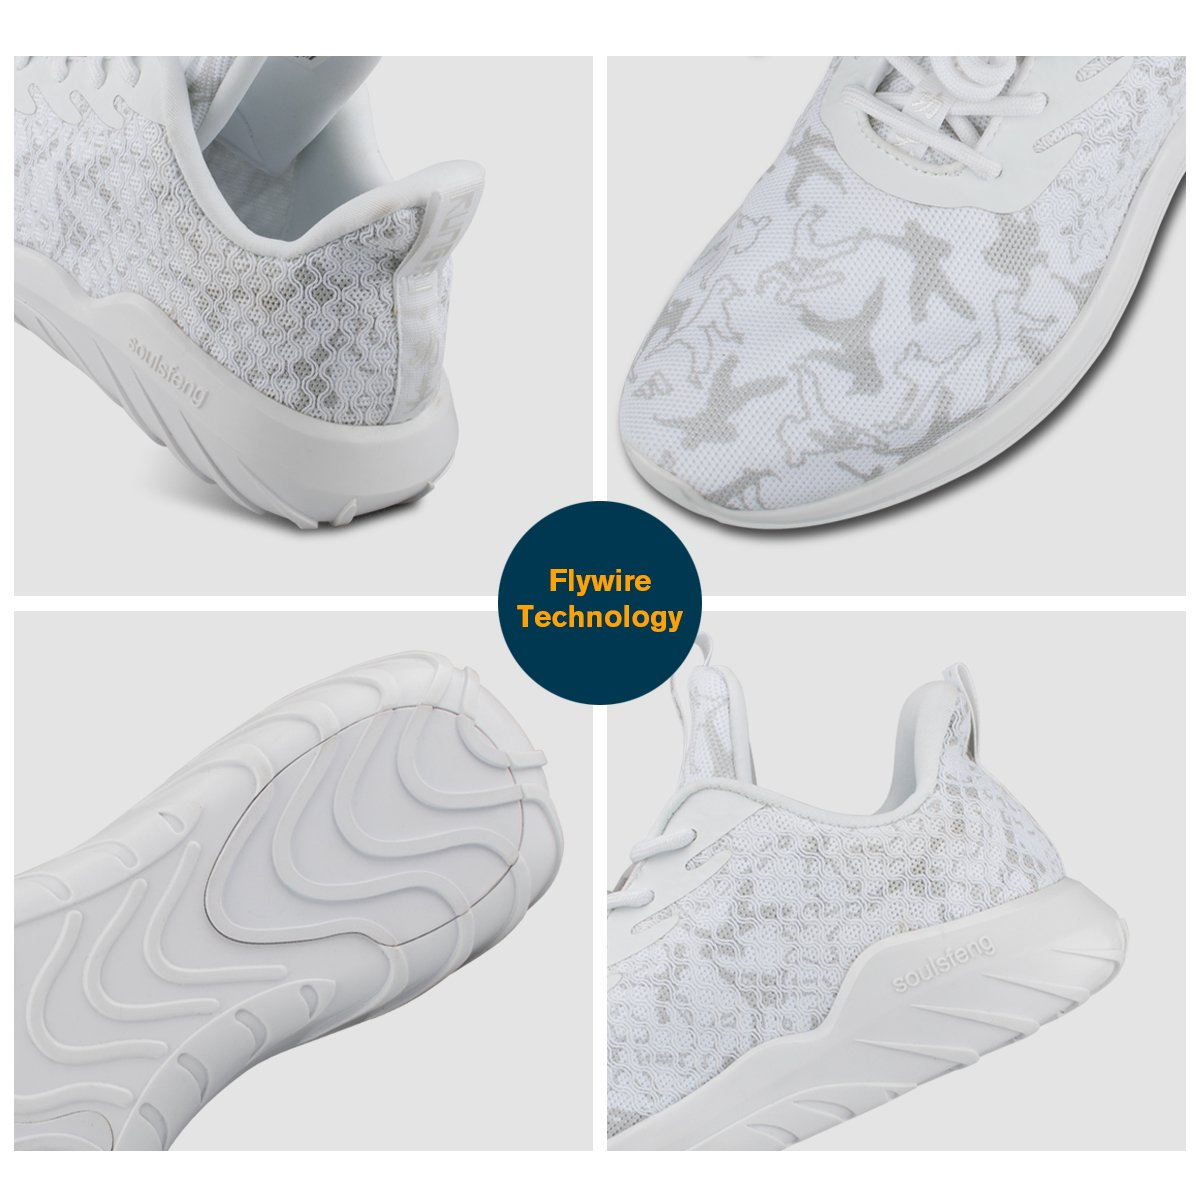 Running Shoes Men Women Wide Sneakers for Boys Girls Youth, Lightweight Shoes B075ZQHQ4C Women 8 B(M)US=EUR39=25CM|White